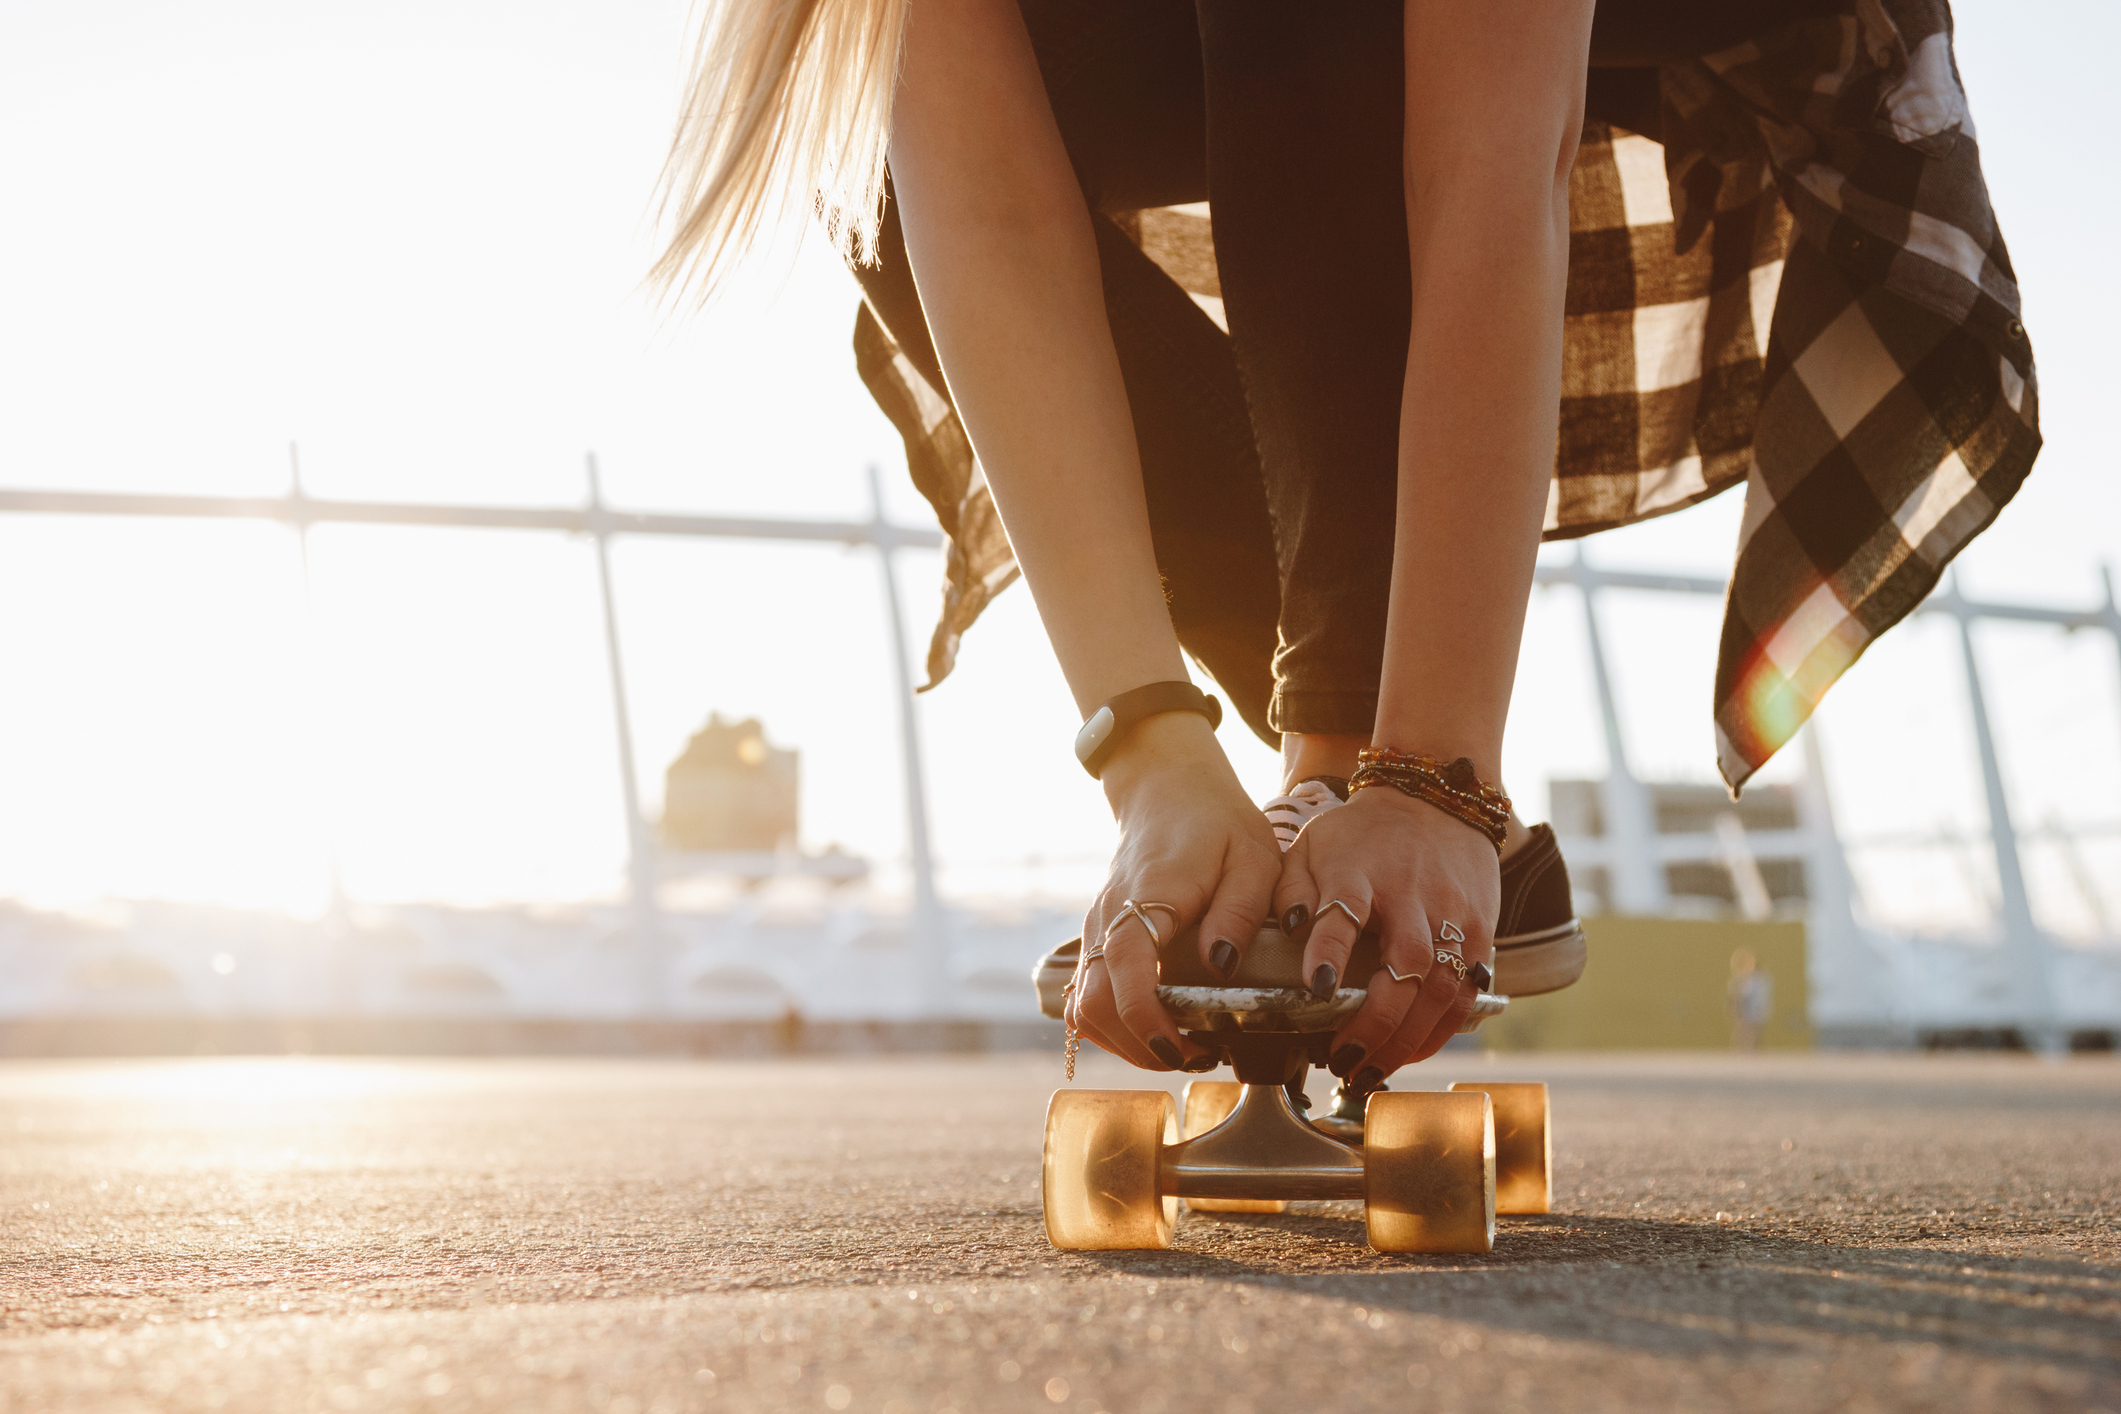 Hipster girl legs and hands with rings on a skate board